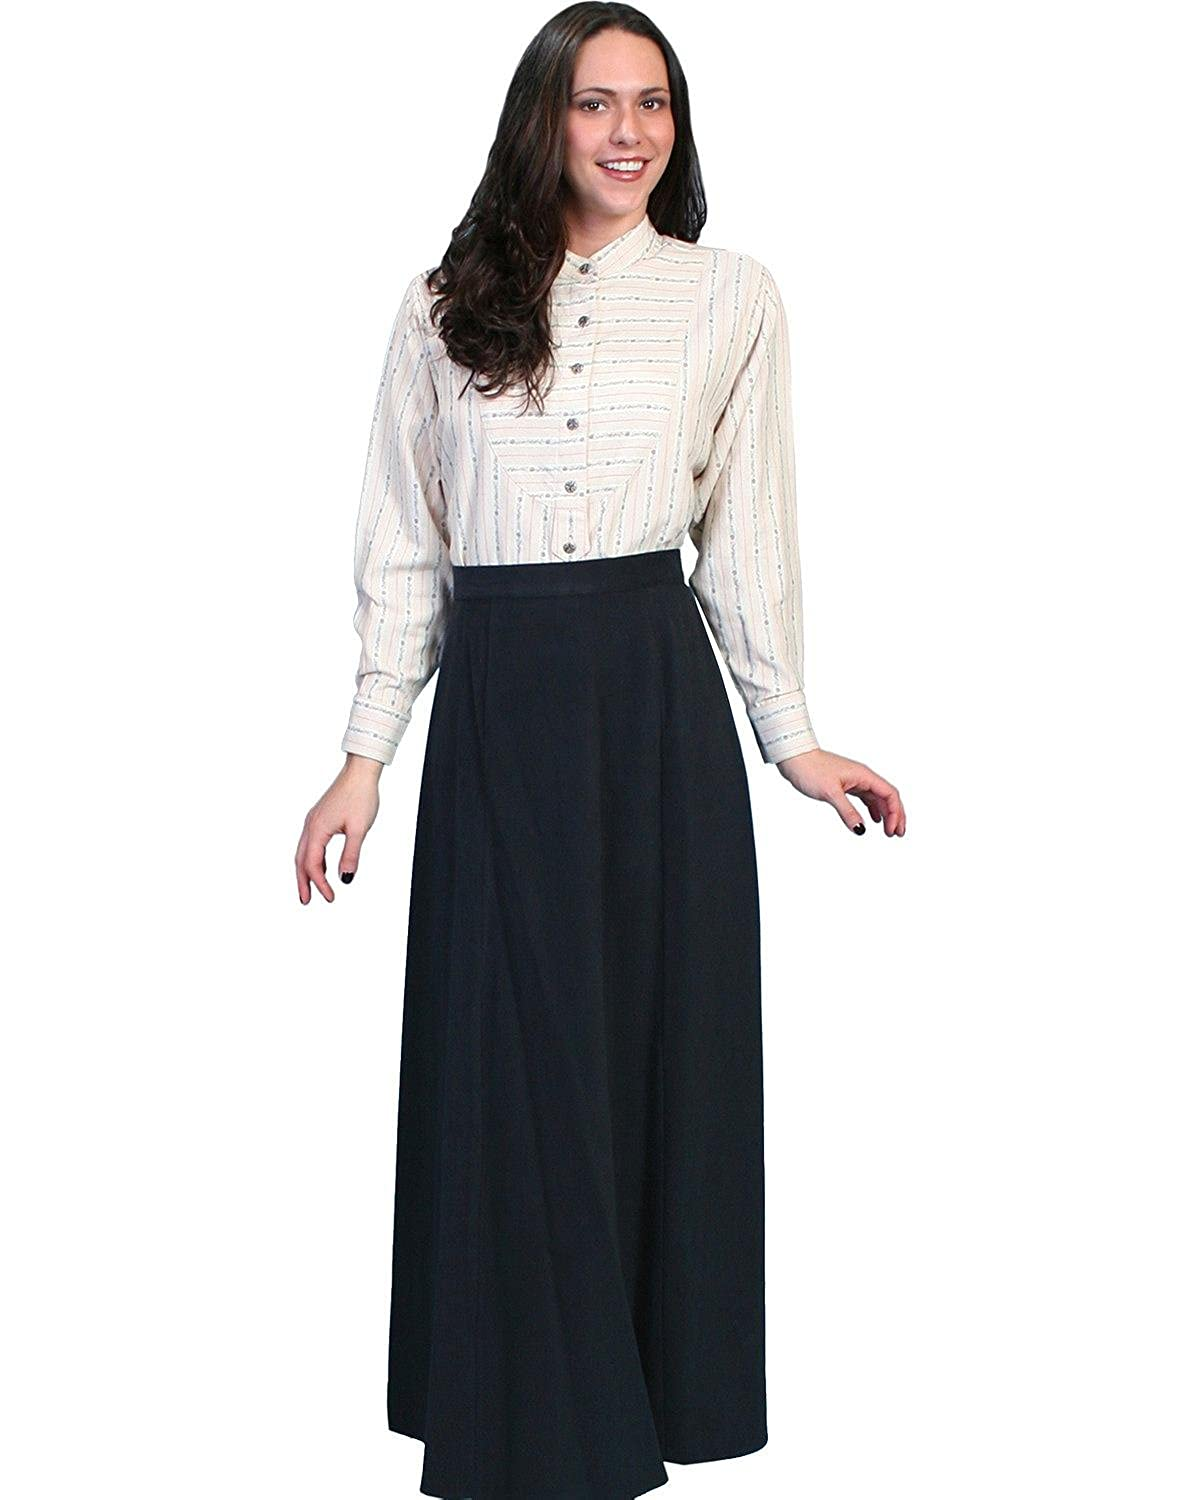 Victorian Skirts | Bustle, Walking, Edwardian Skirts Scully Rangewear Womens Rangewear Brushed Twill Skirt - Rw530tan $76.75 AT vintagedancer.com